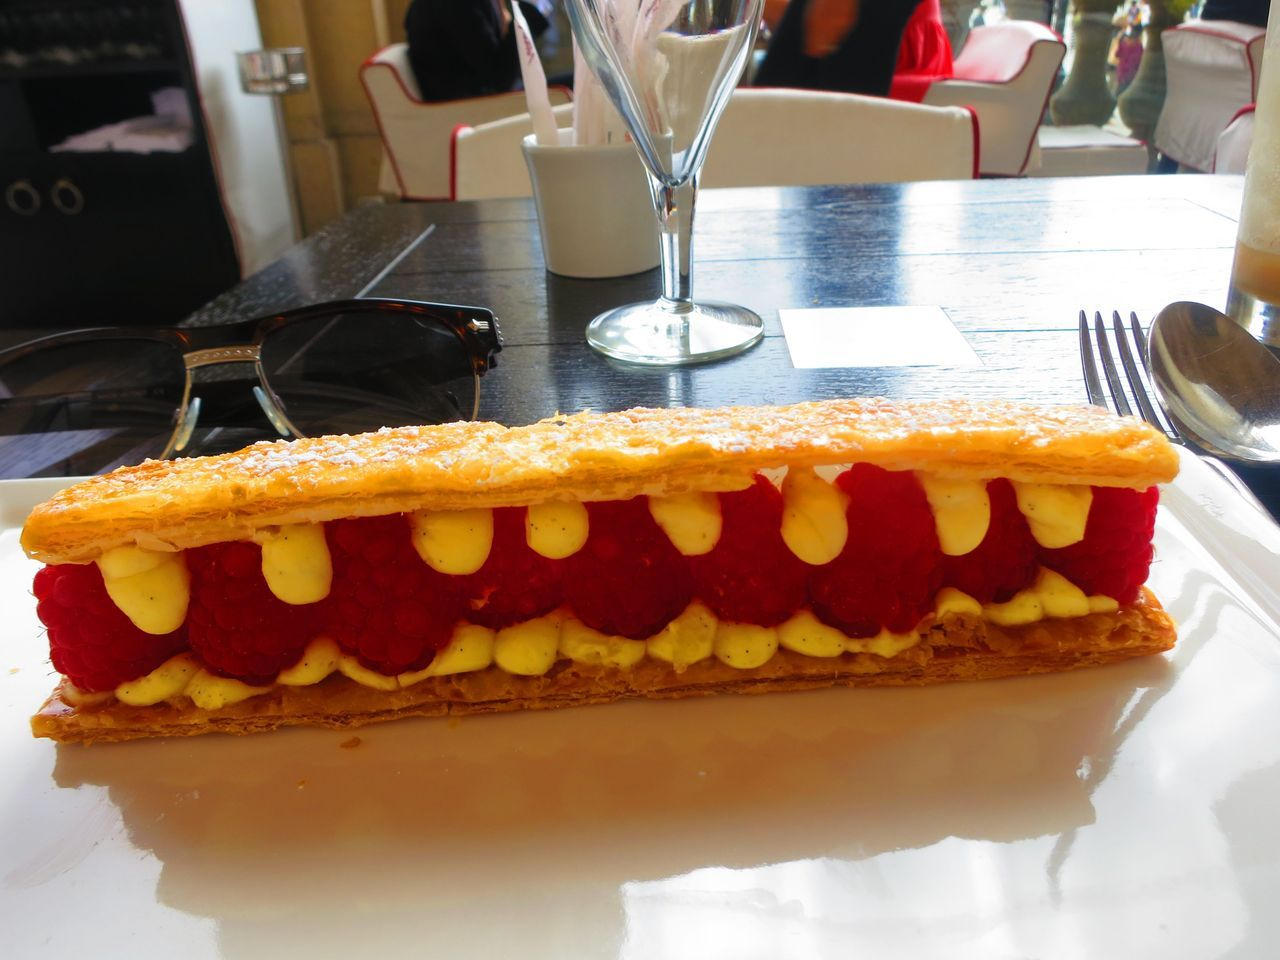 Best dessert of the week in Paris.